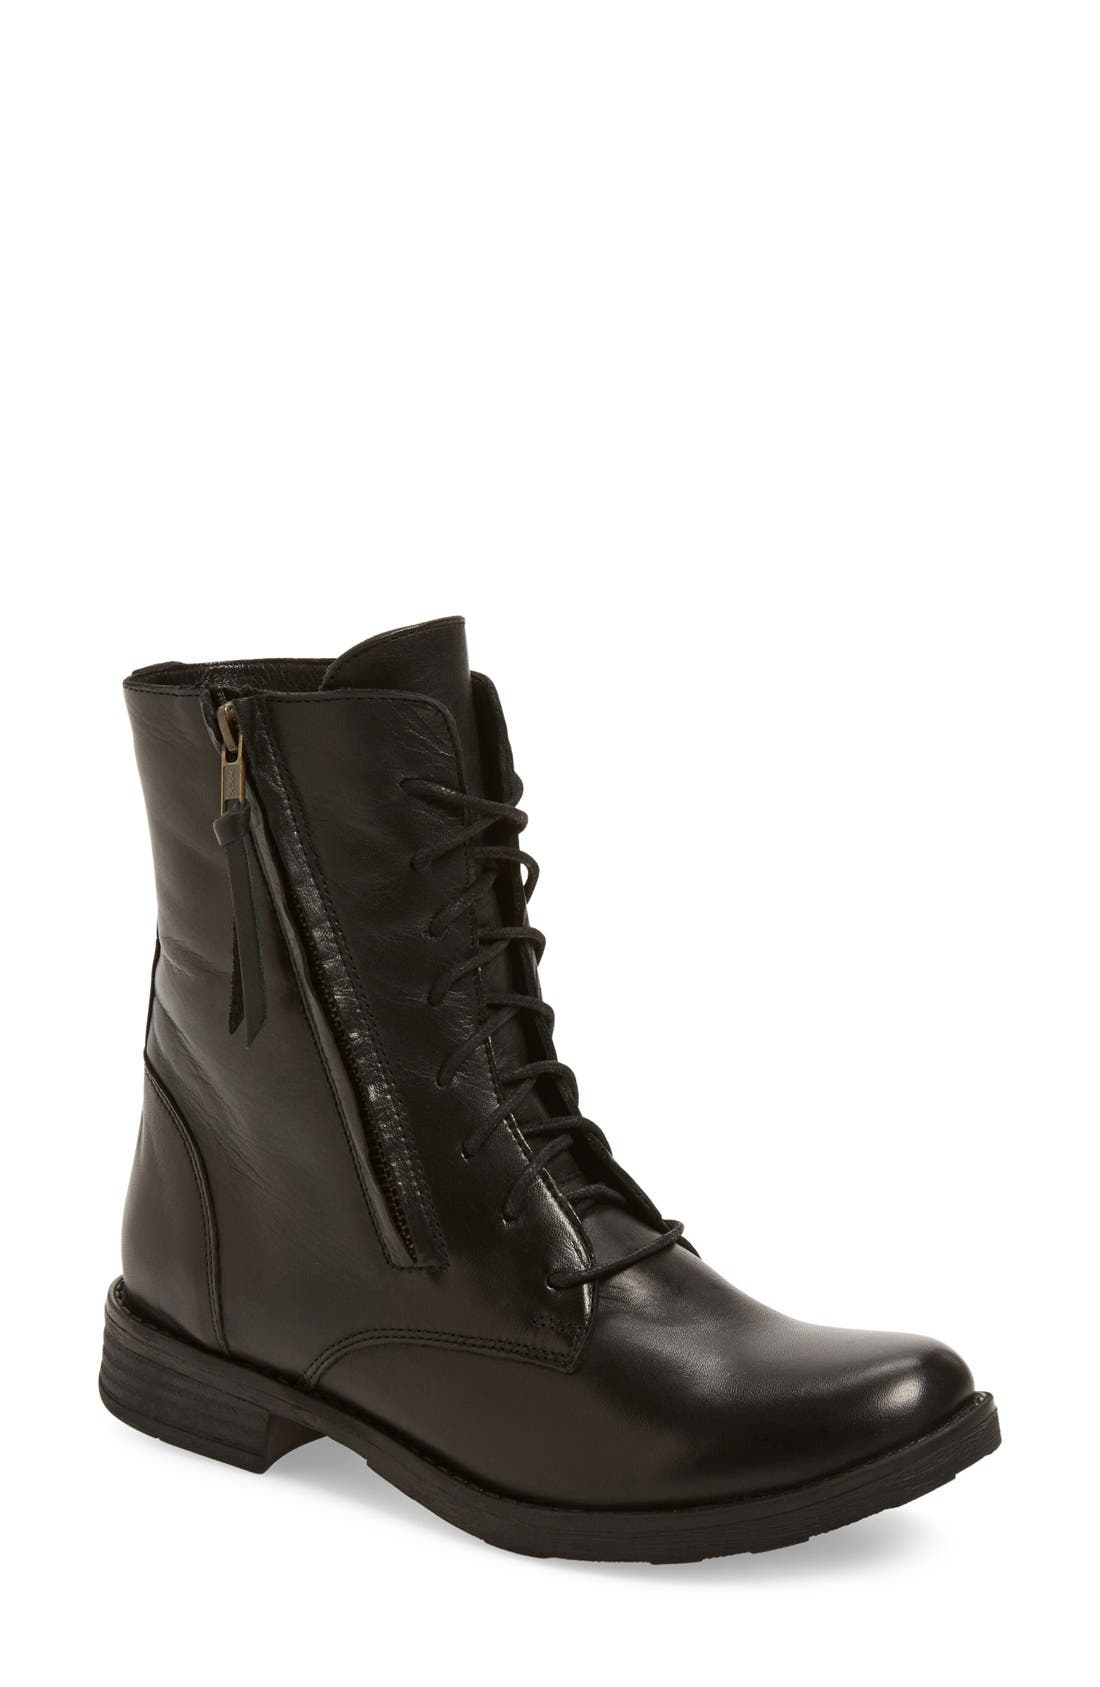 Main Image - Miz Mooz 'Tuned' Lace-Up Boot (Women)